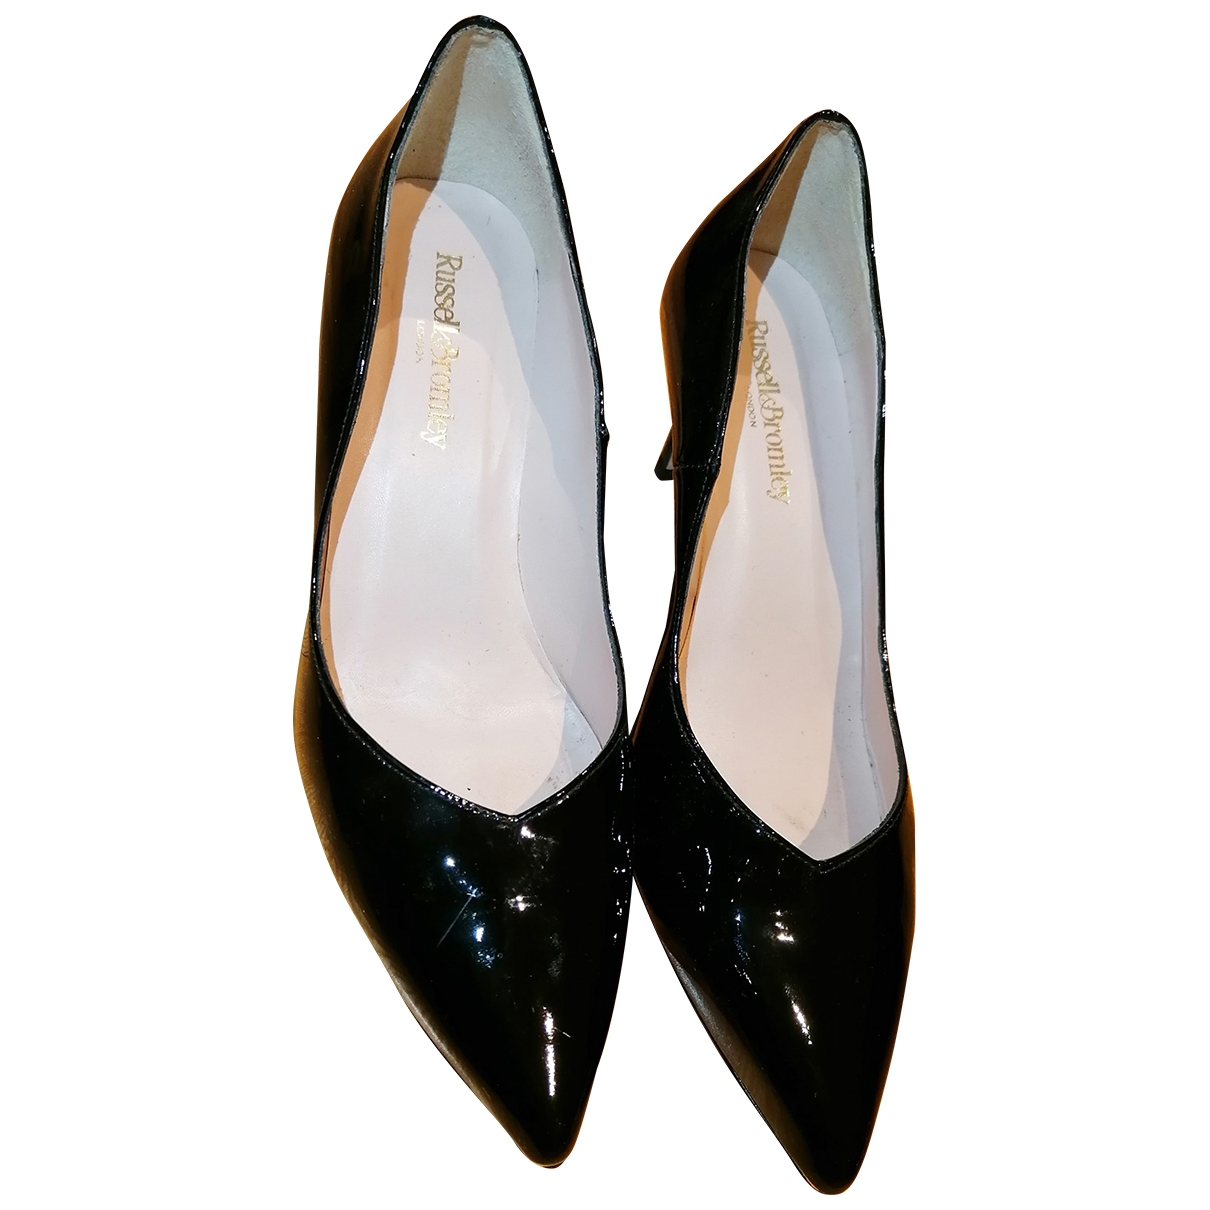 Russell & Bromley \N Black Patent leather Heels for Women 39 EU